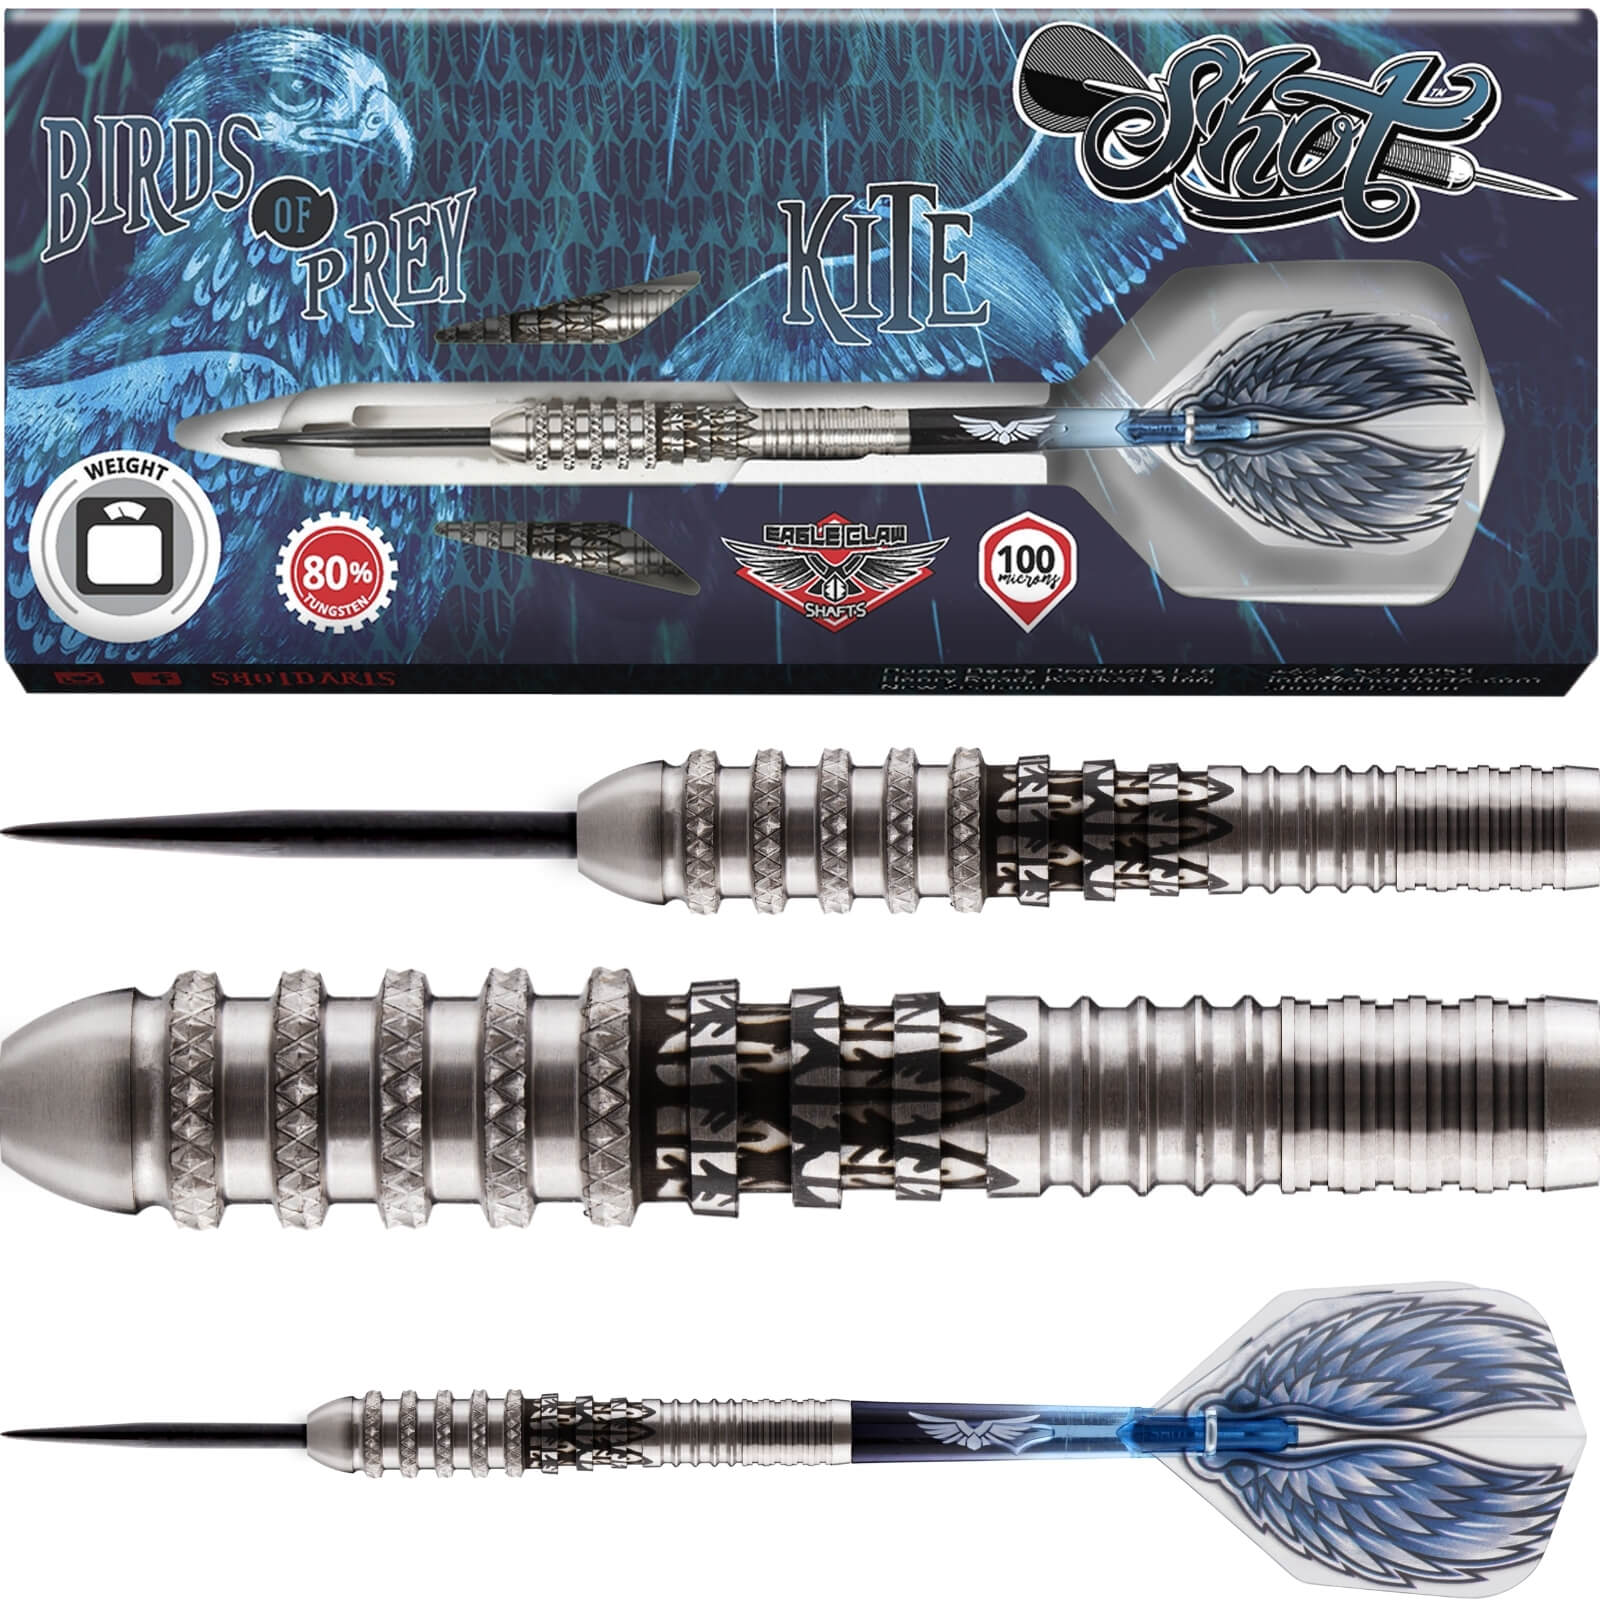 Darts - Shot - Birds of Prey Kite Darts - Steel Tip - 80% Tungsten - 21g 23g 25g